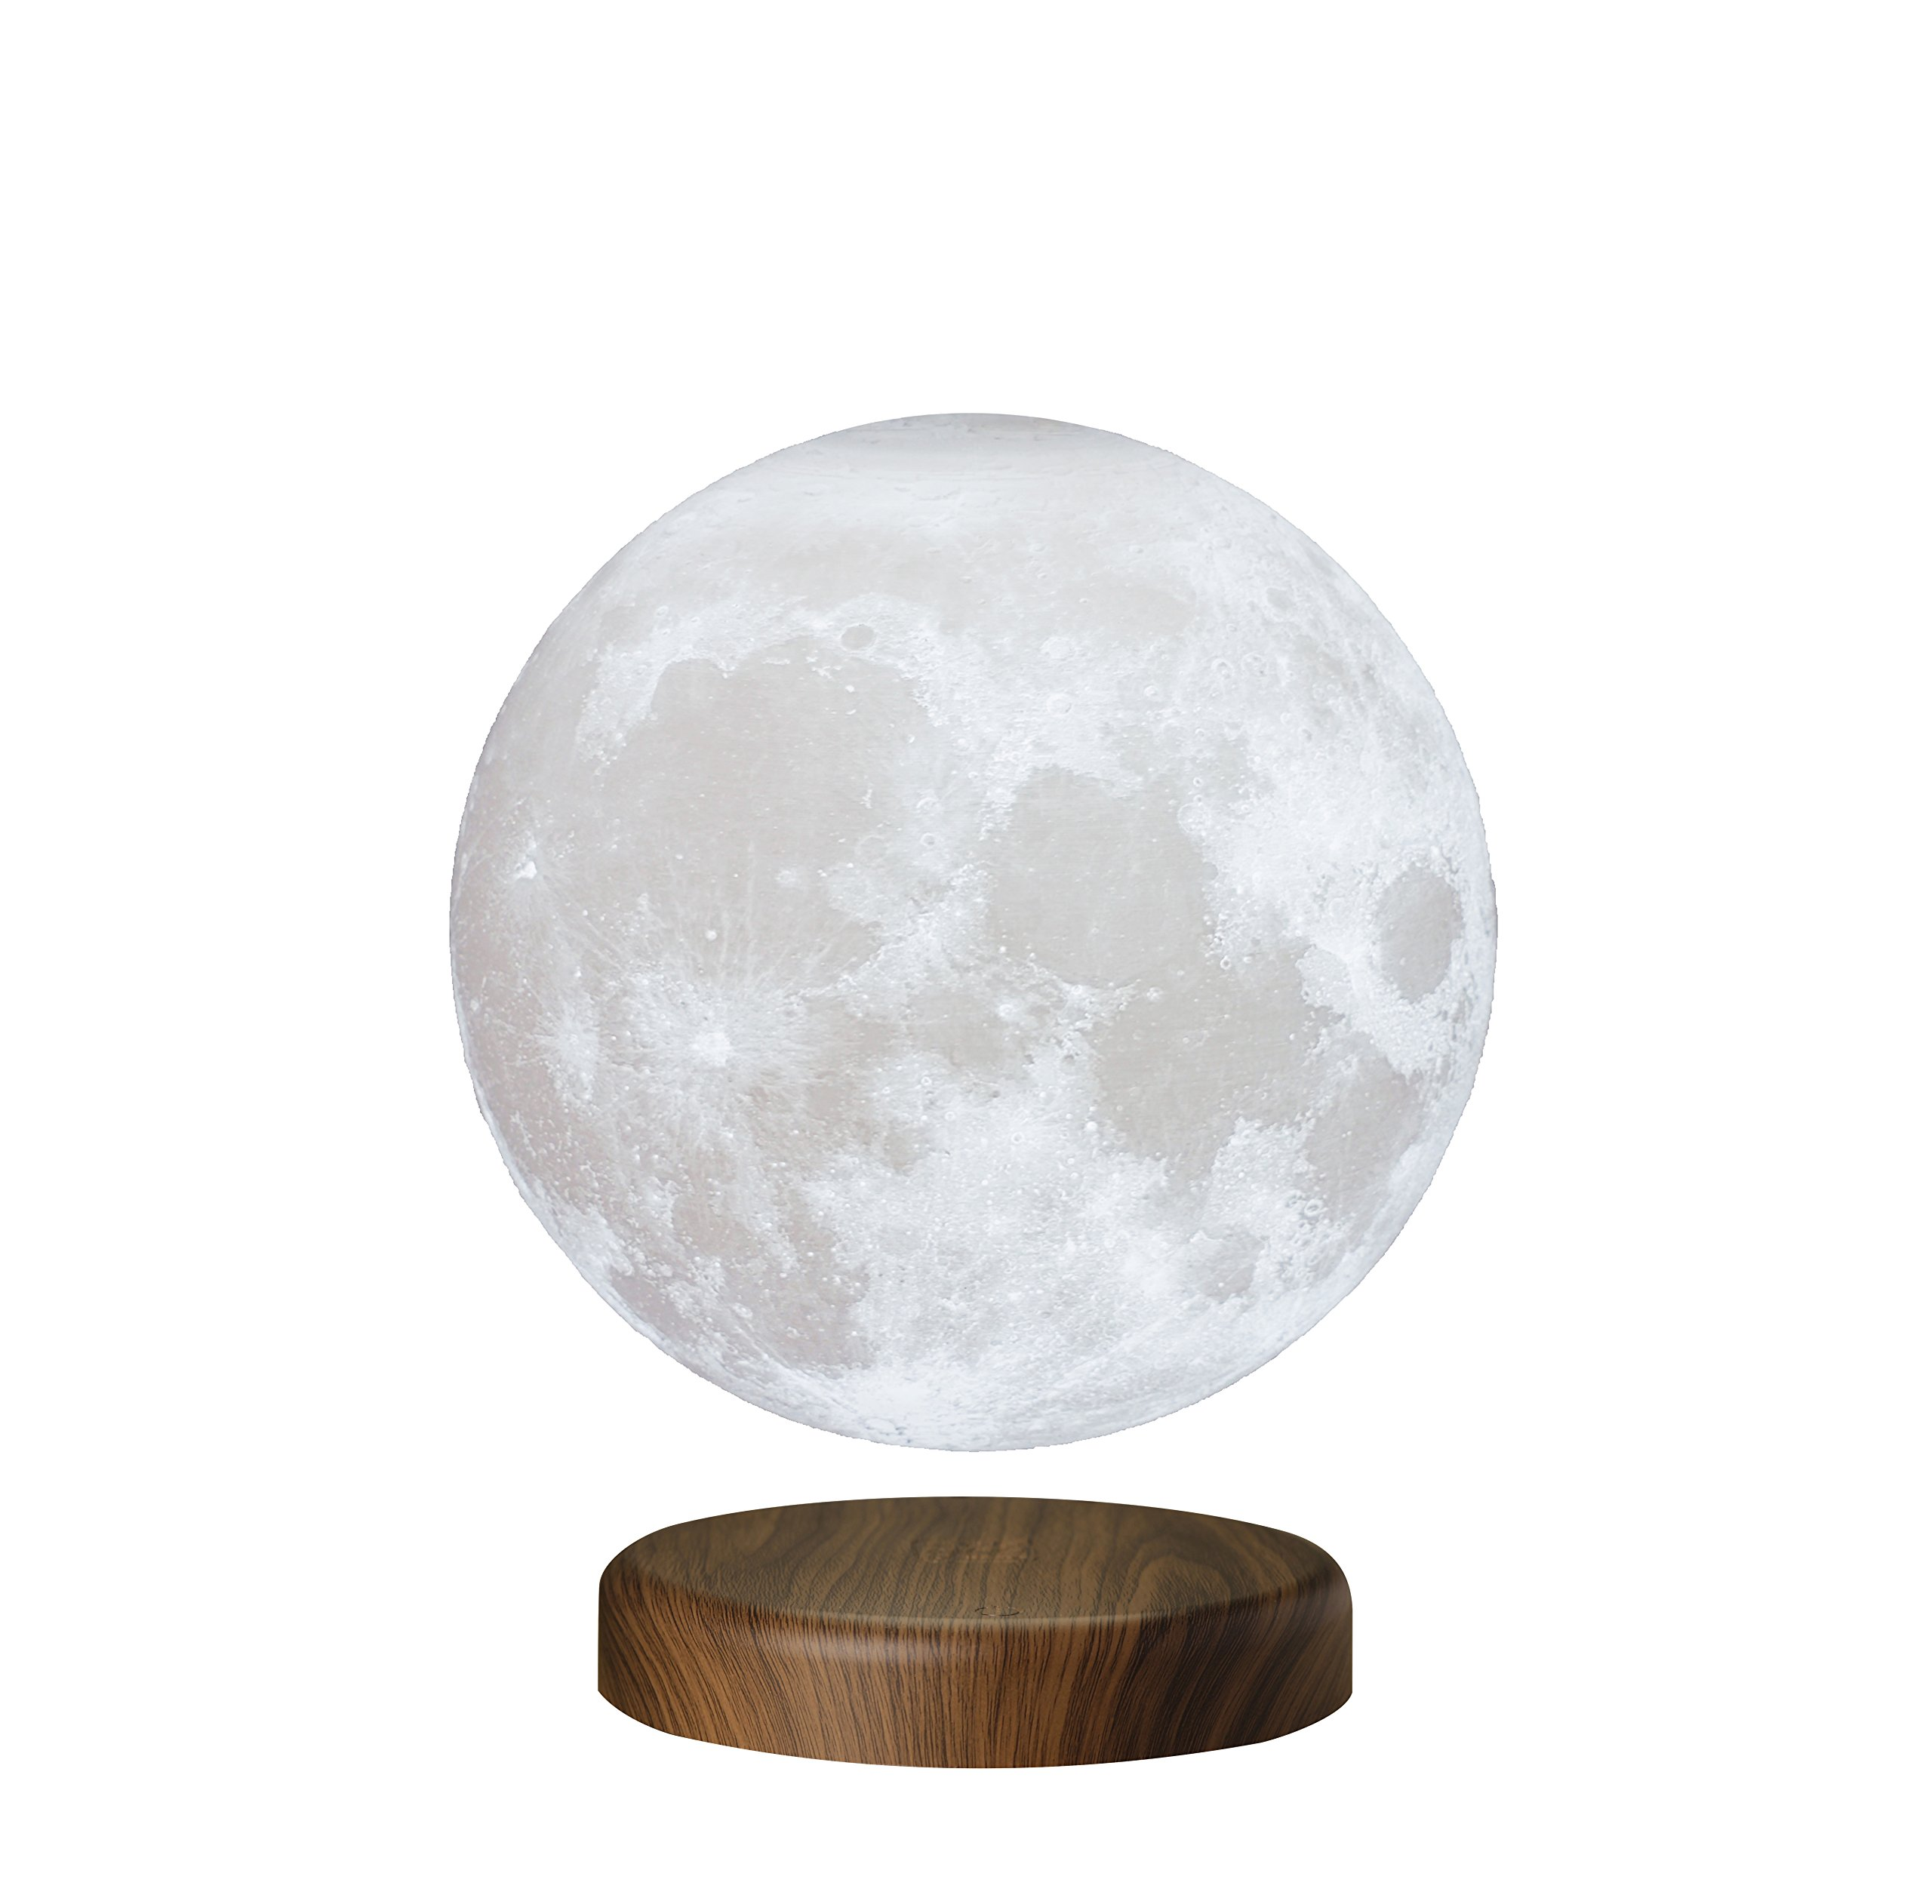 Levituna Magnetic Levitation Floating Moon 3D Printing LED Night Light Rotating Lunar Table Lamp for Home Desk Office Decor 7.1IN